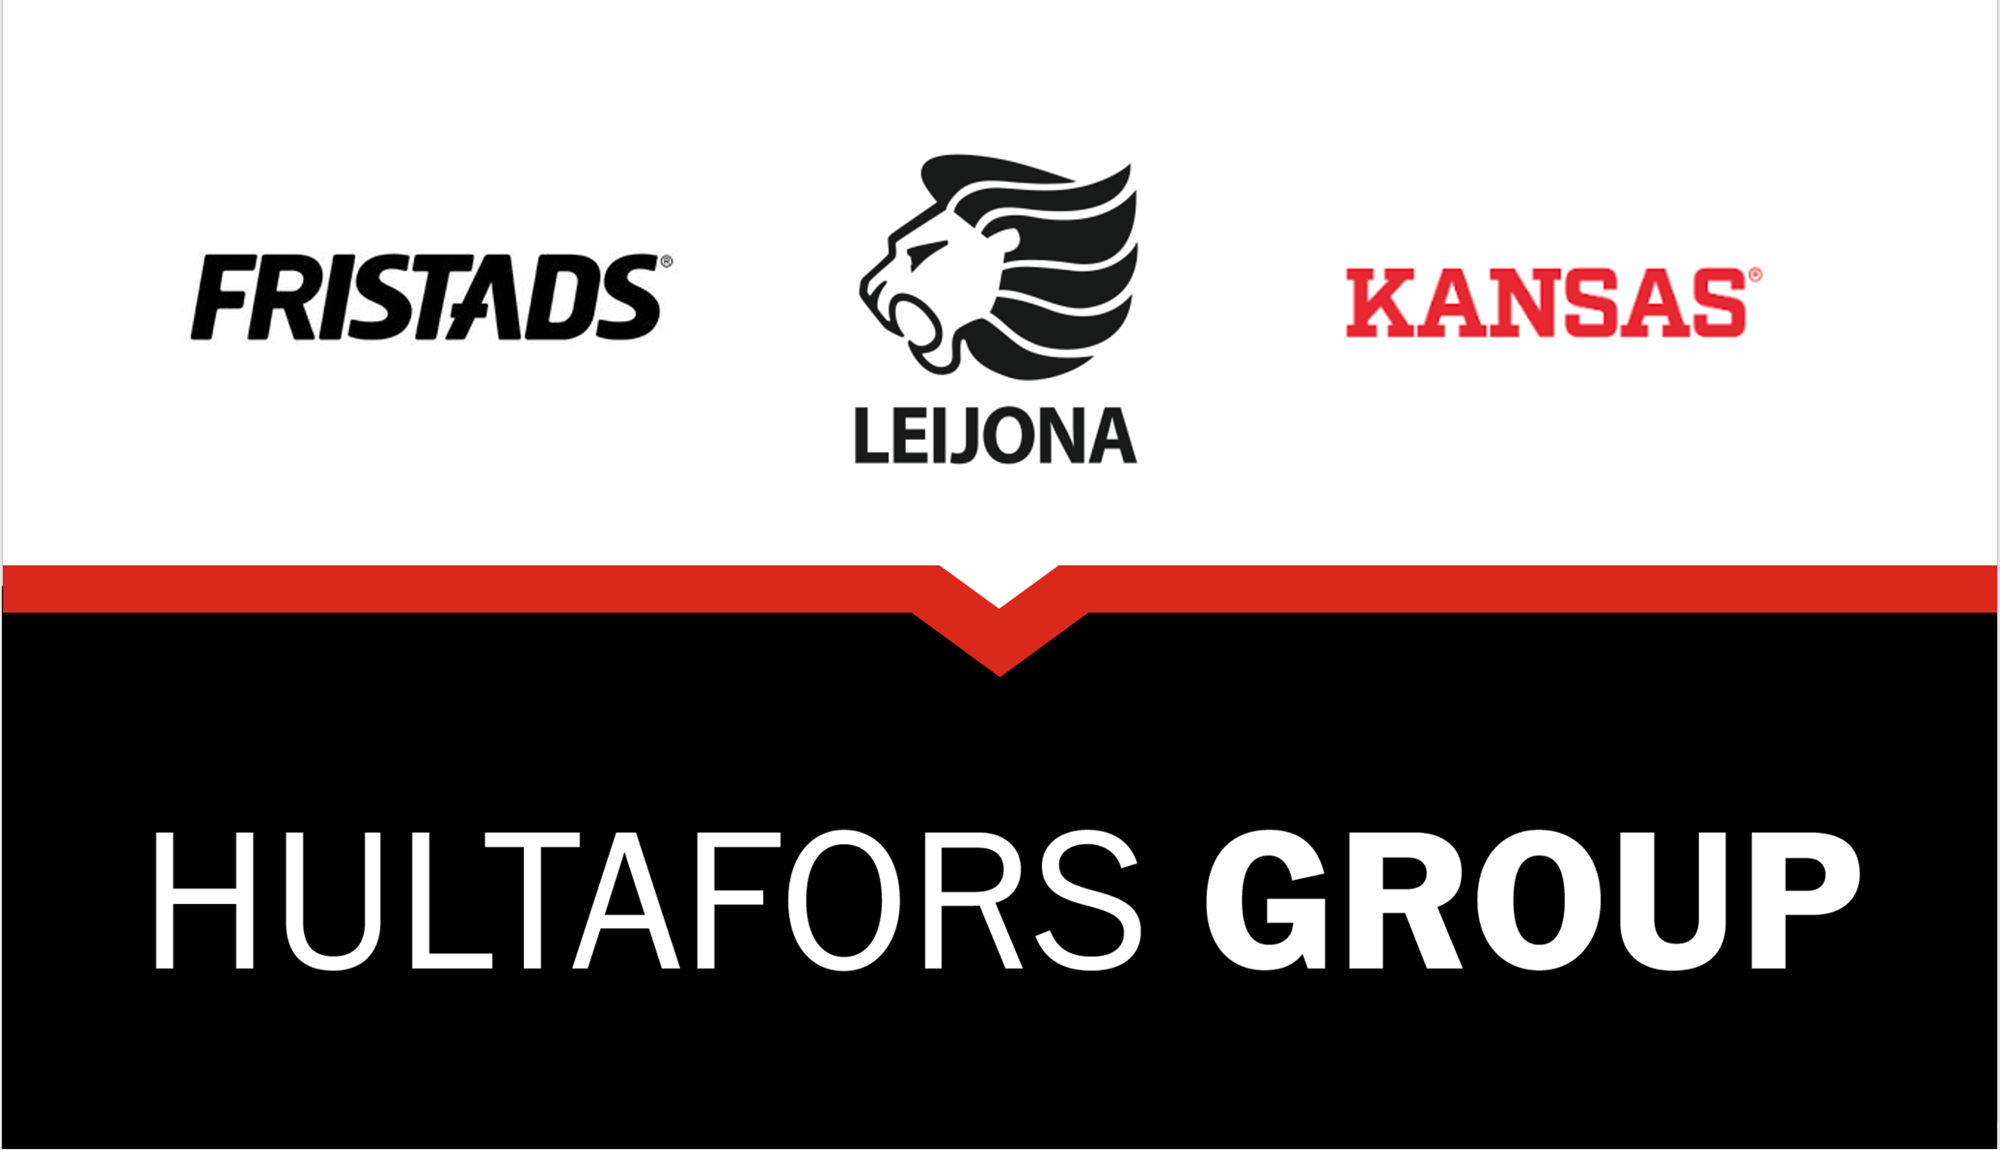 Hultafors Group acquires Fristads, Kansas and Leijona